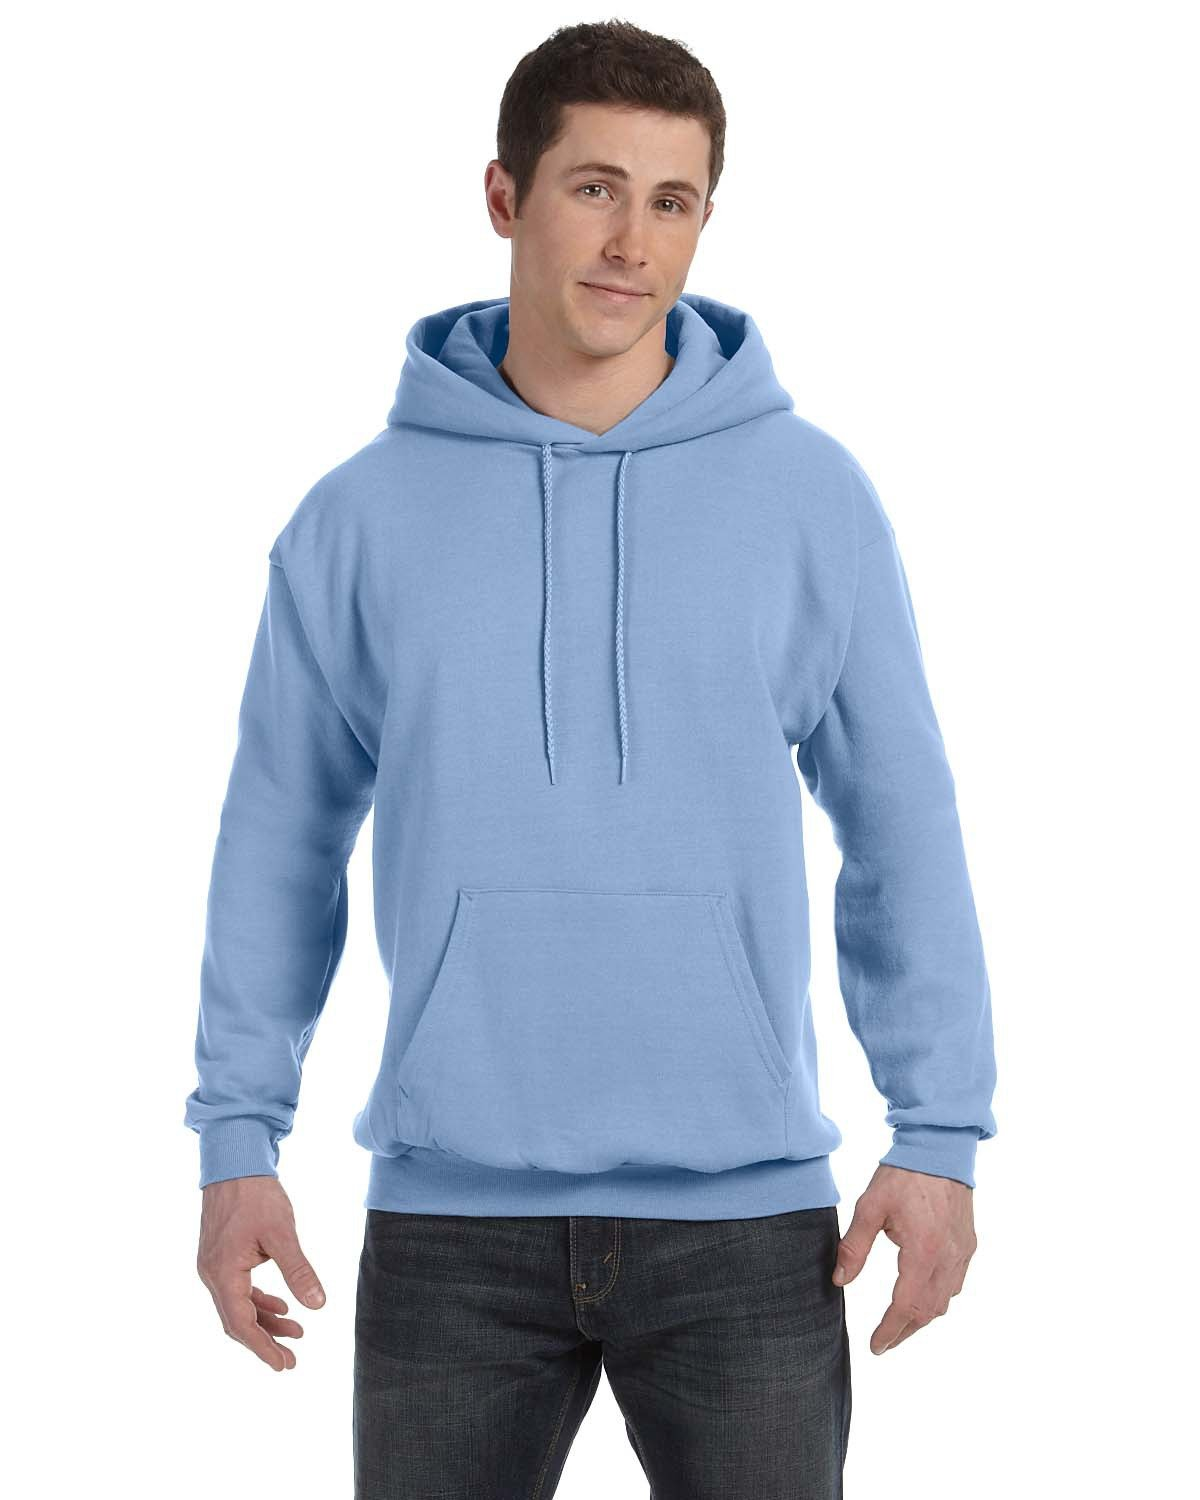 Hanes Unisex Ecosmart® 50/50 Pullover Hooded Sweatshirt LIGHT BLUE